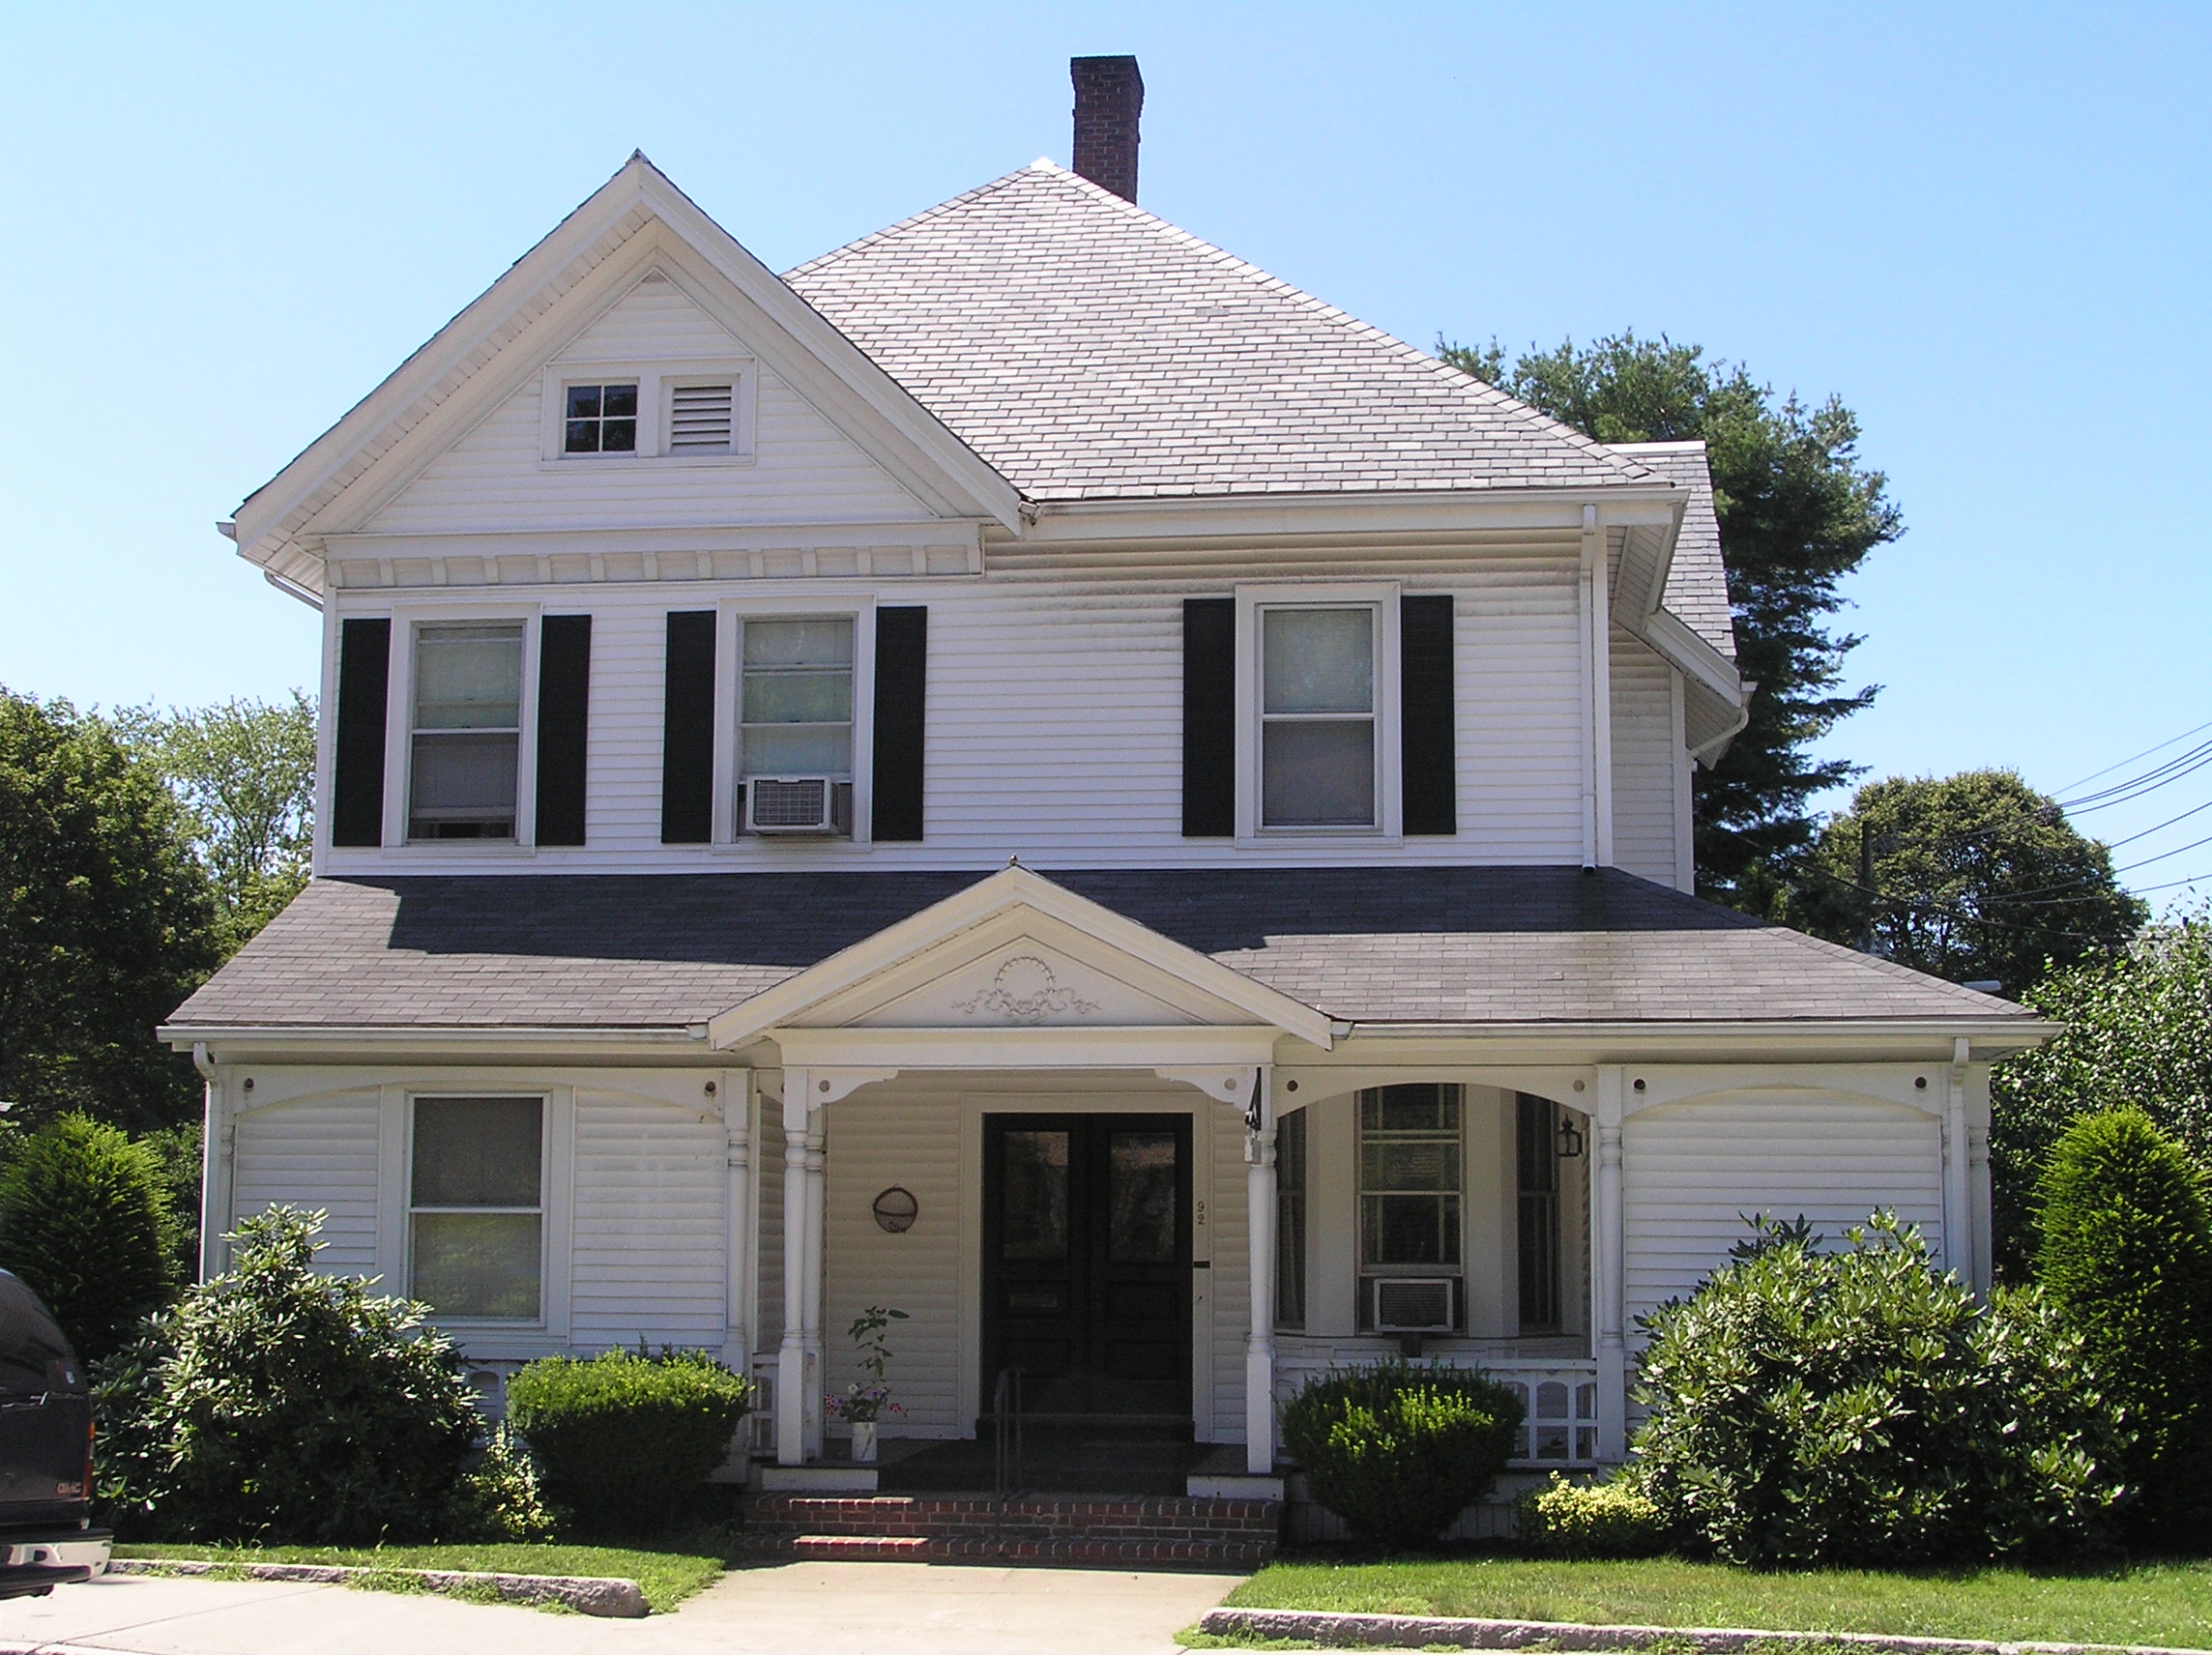 The Lord - Brown house at 90 Central Street